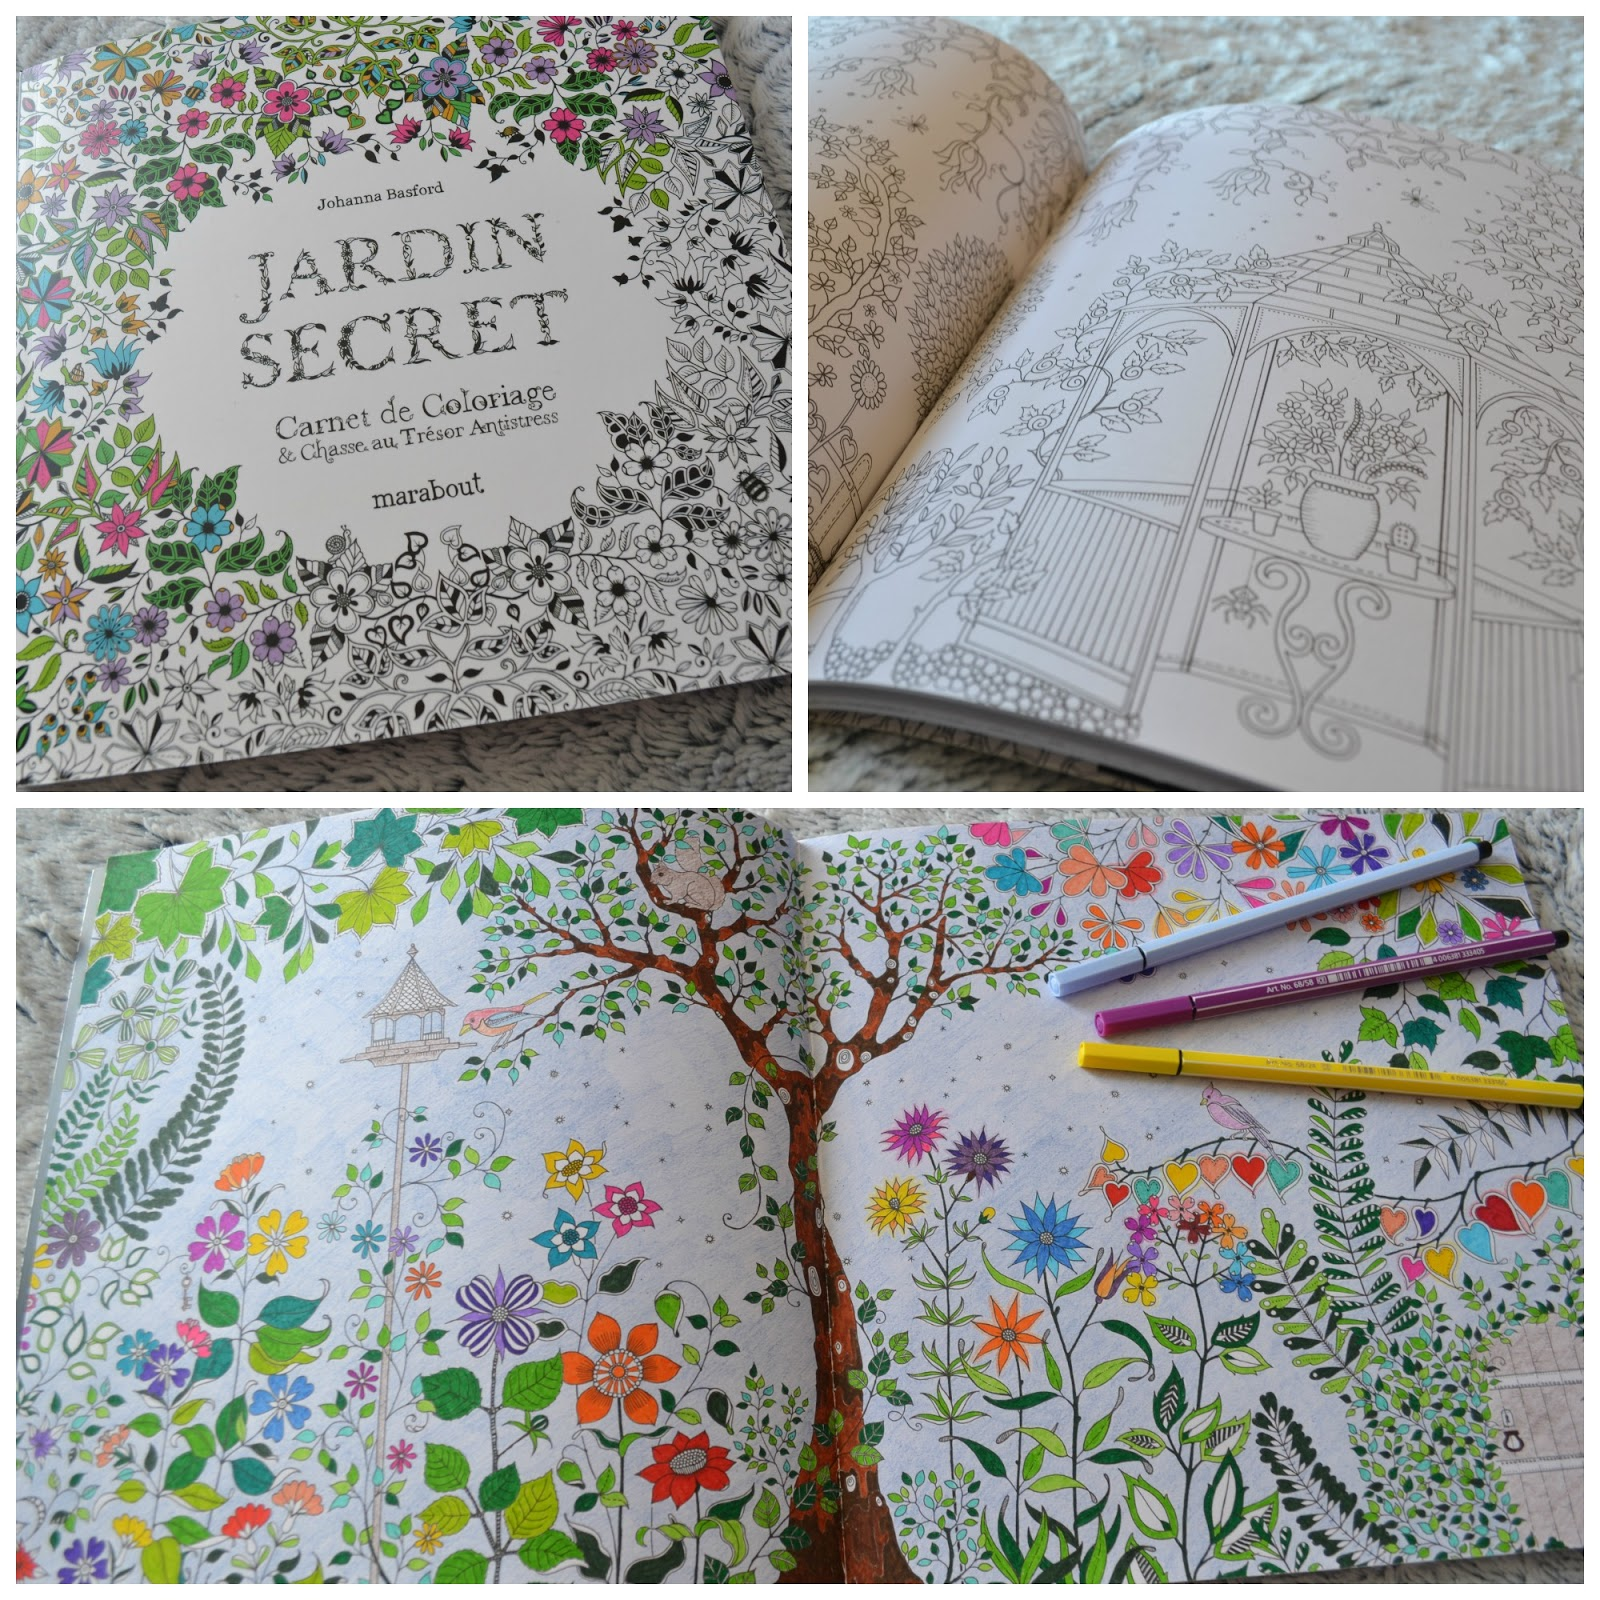 Cr a colo revue jardin secret carnet de coloriage for Jardin secret des hansen